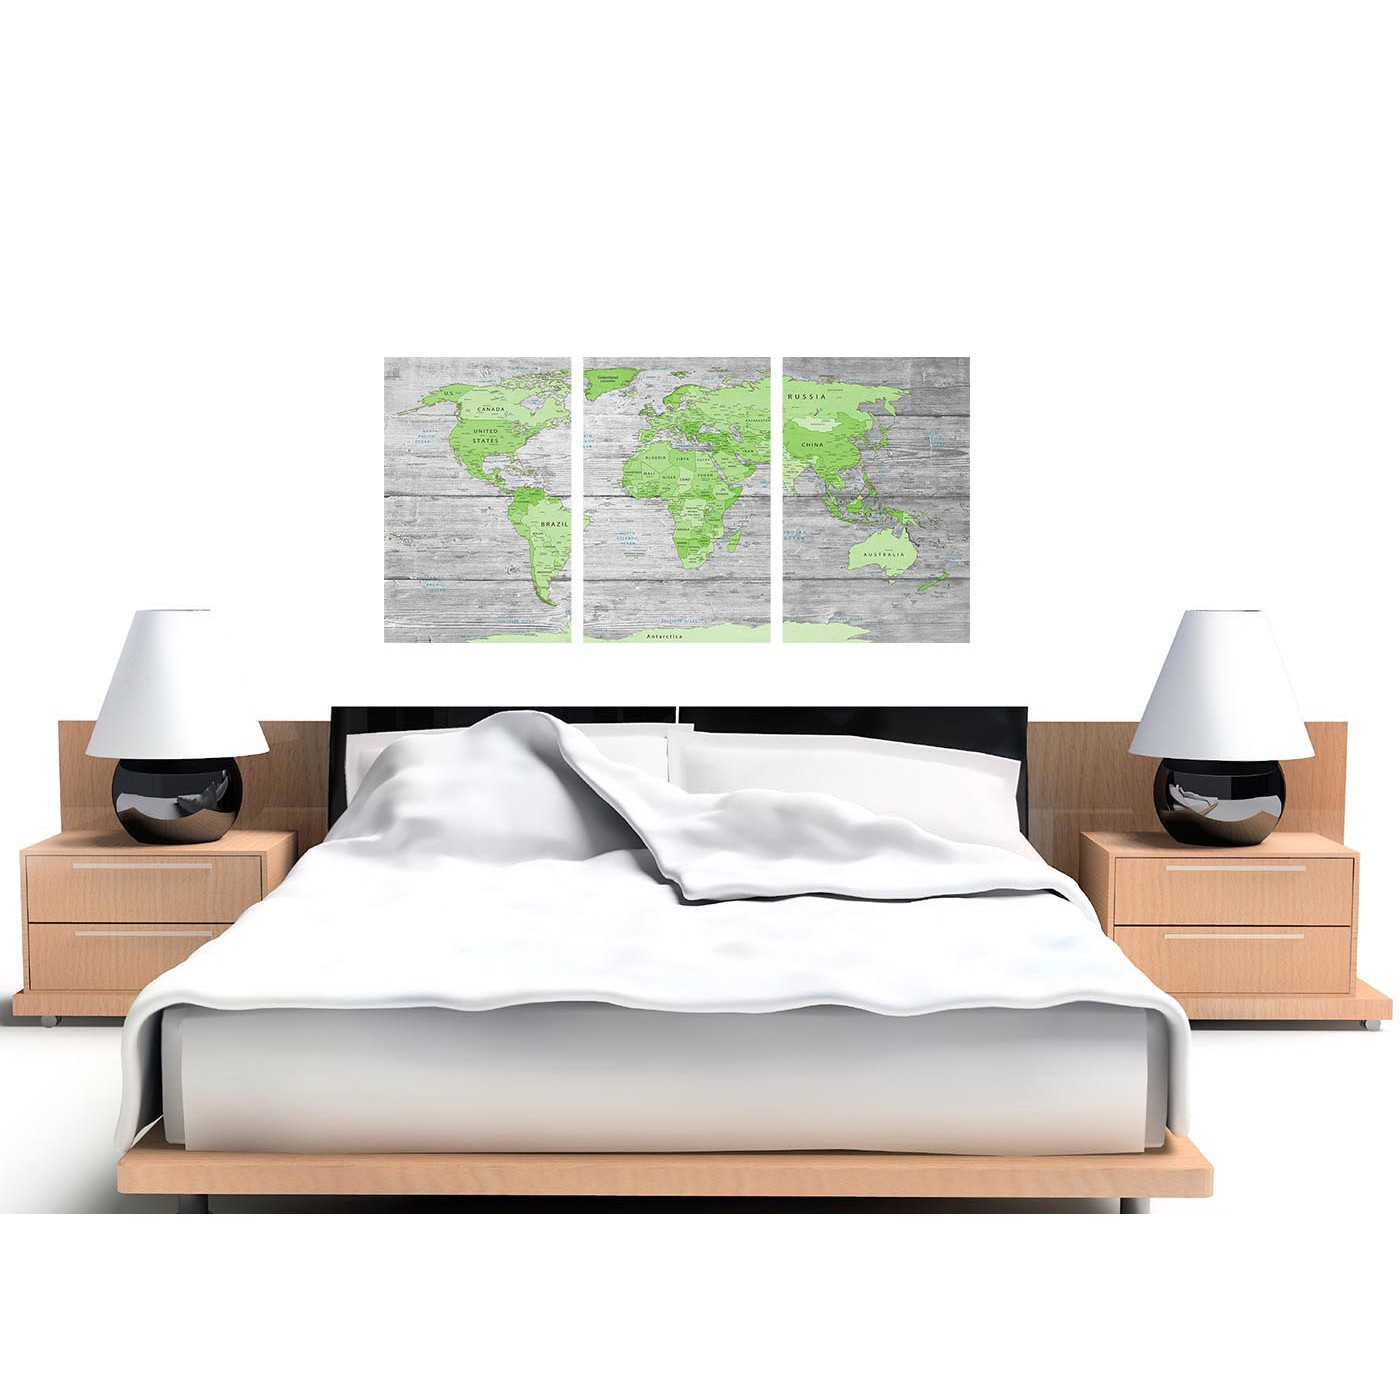 Large lime green grey world map atlas canvas wall art print multi display gallery item 1 cheap green grey large lime green grey world map atlas canvas wall art print maps canvas display gallery item 2 gumiabroncs Images